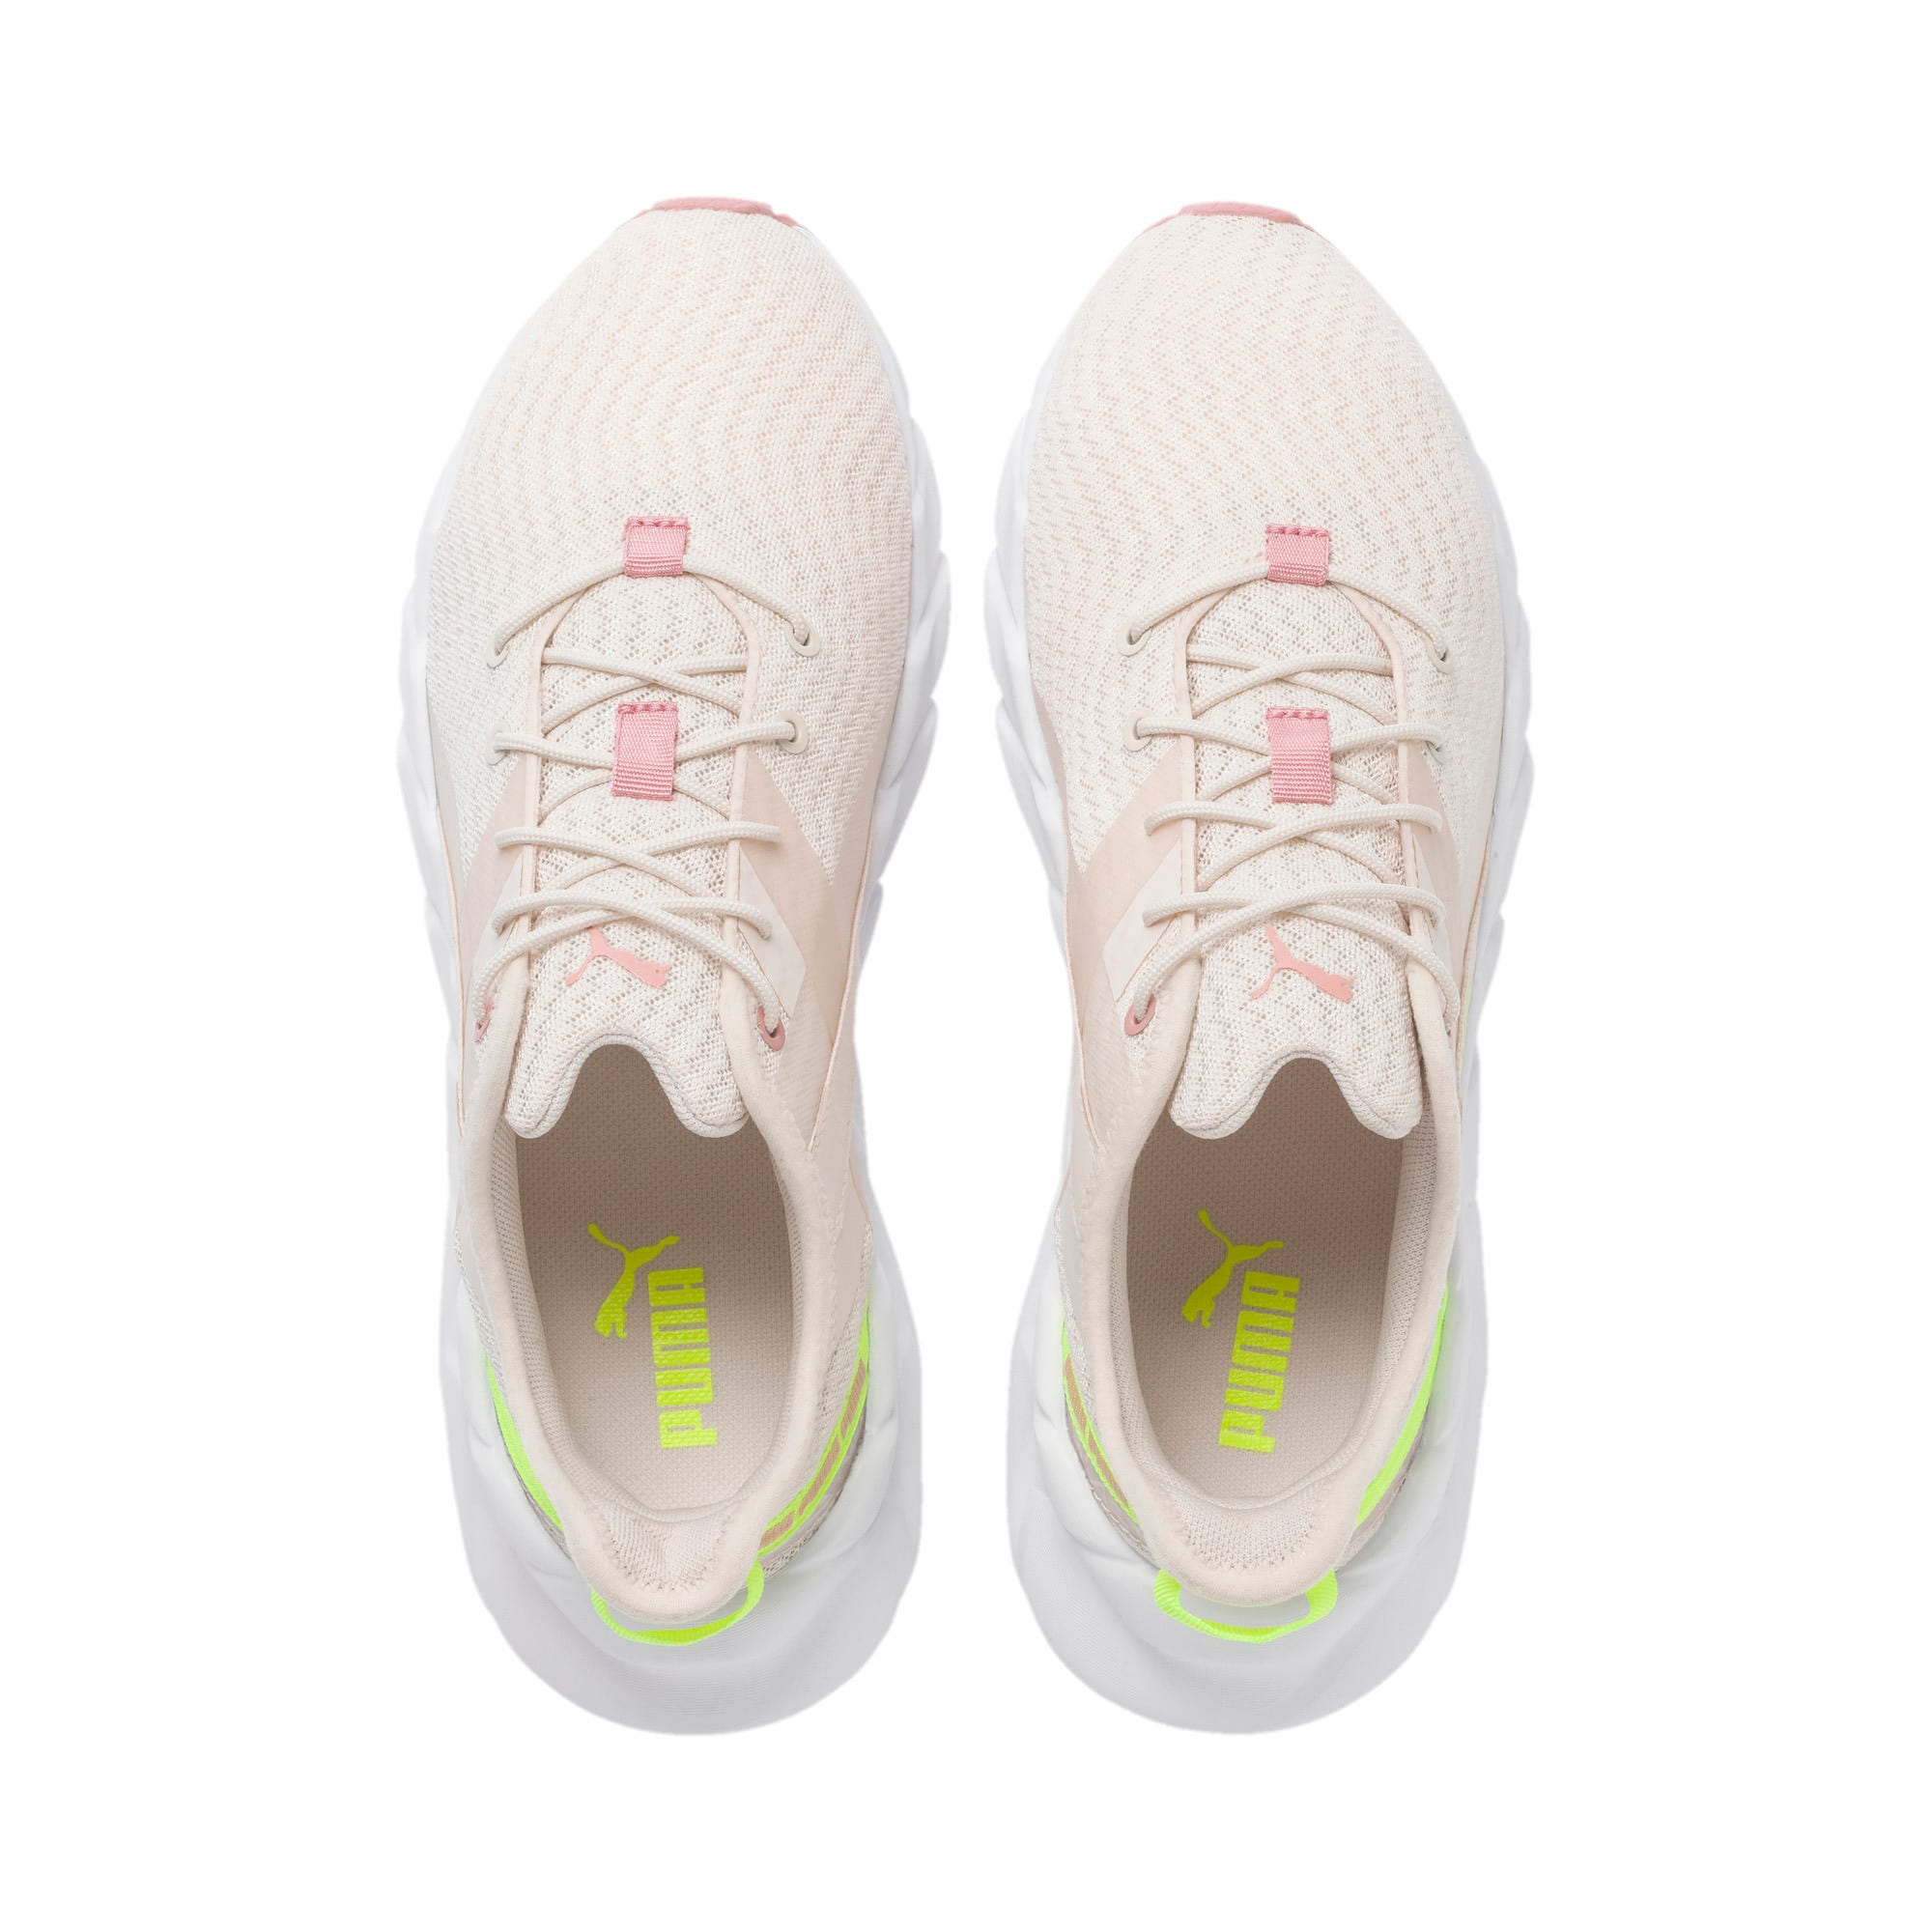 Thumbnail 8 of Weave XT Shift Women's Training Shoes, Pastel Parchment-Puma White, medium